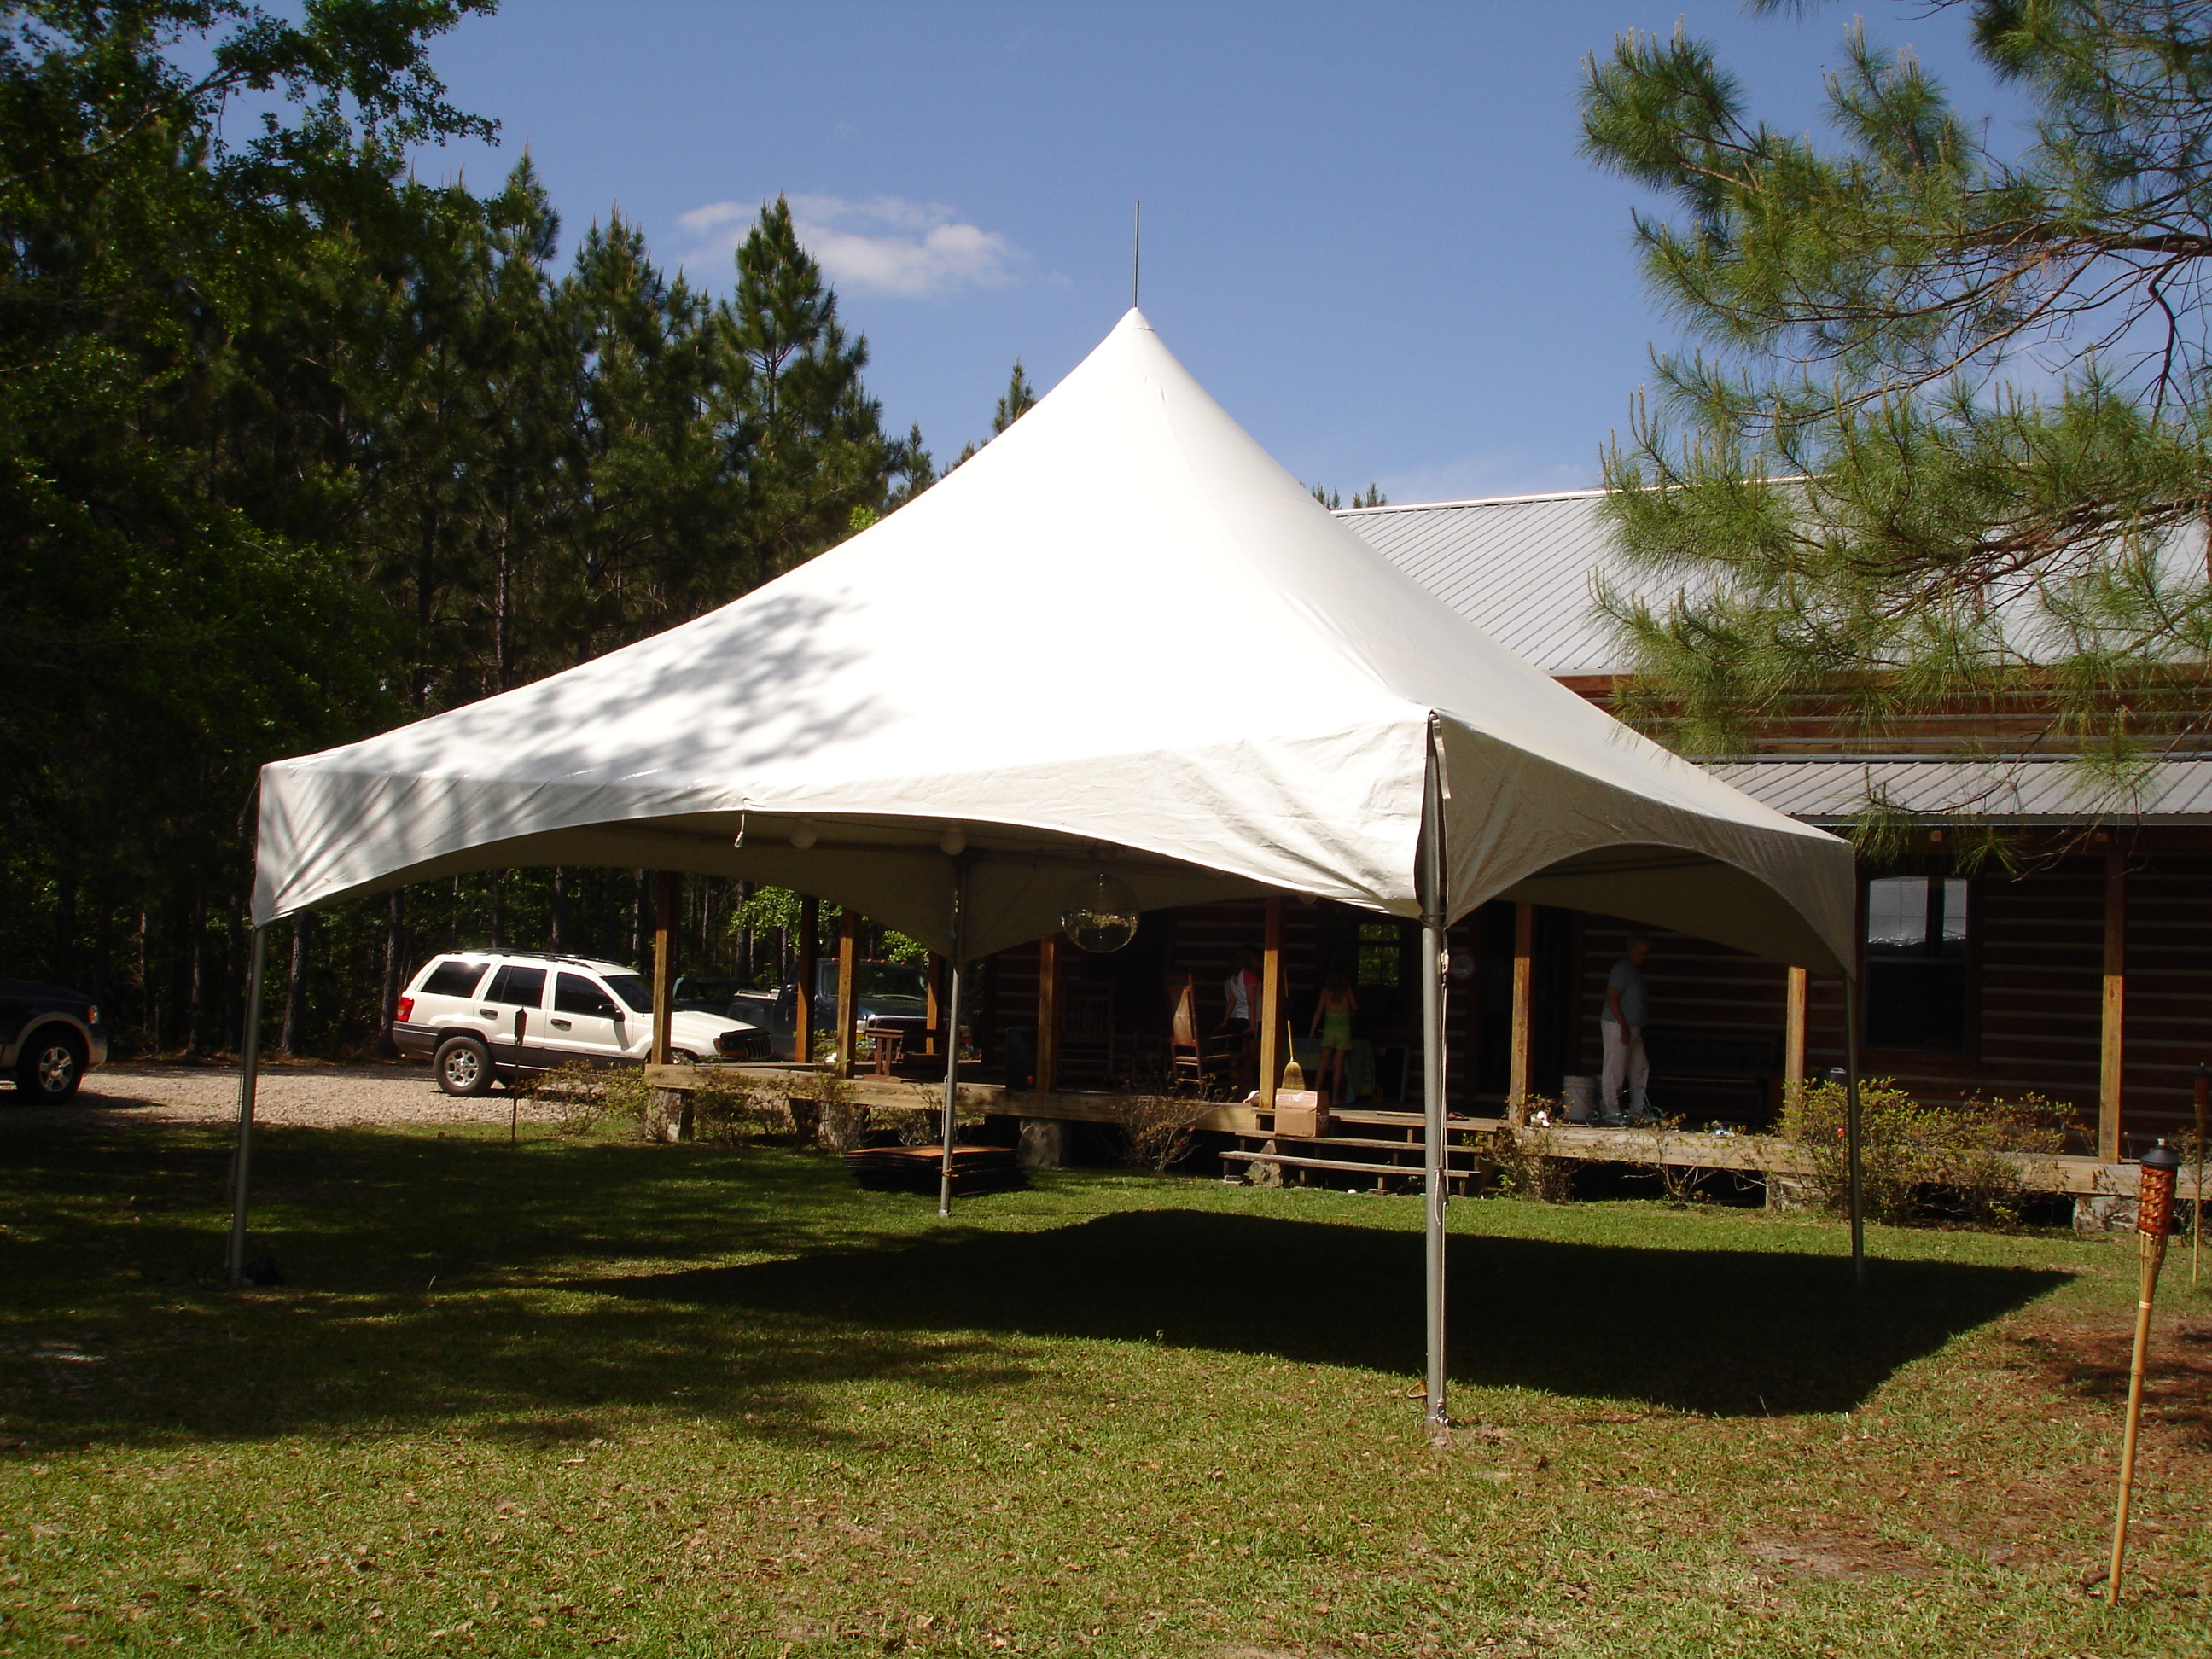 Tent - 20'x20' with Discoball